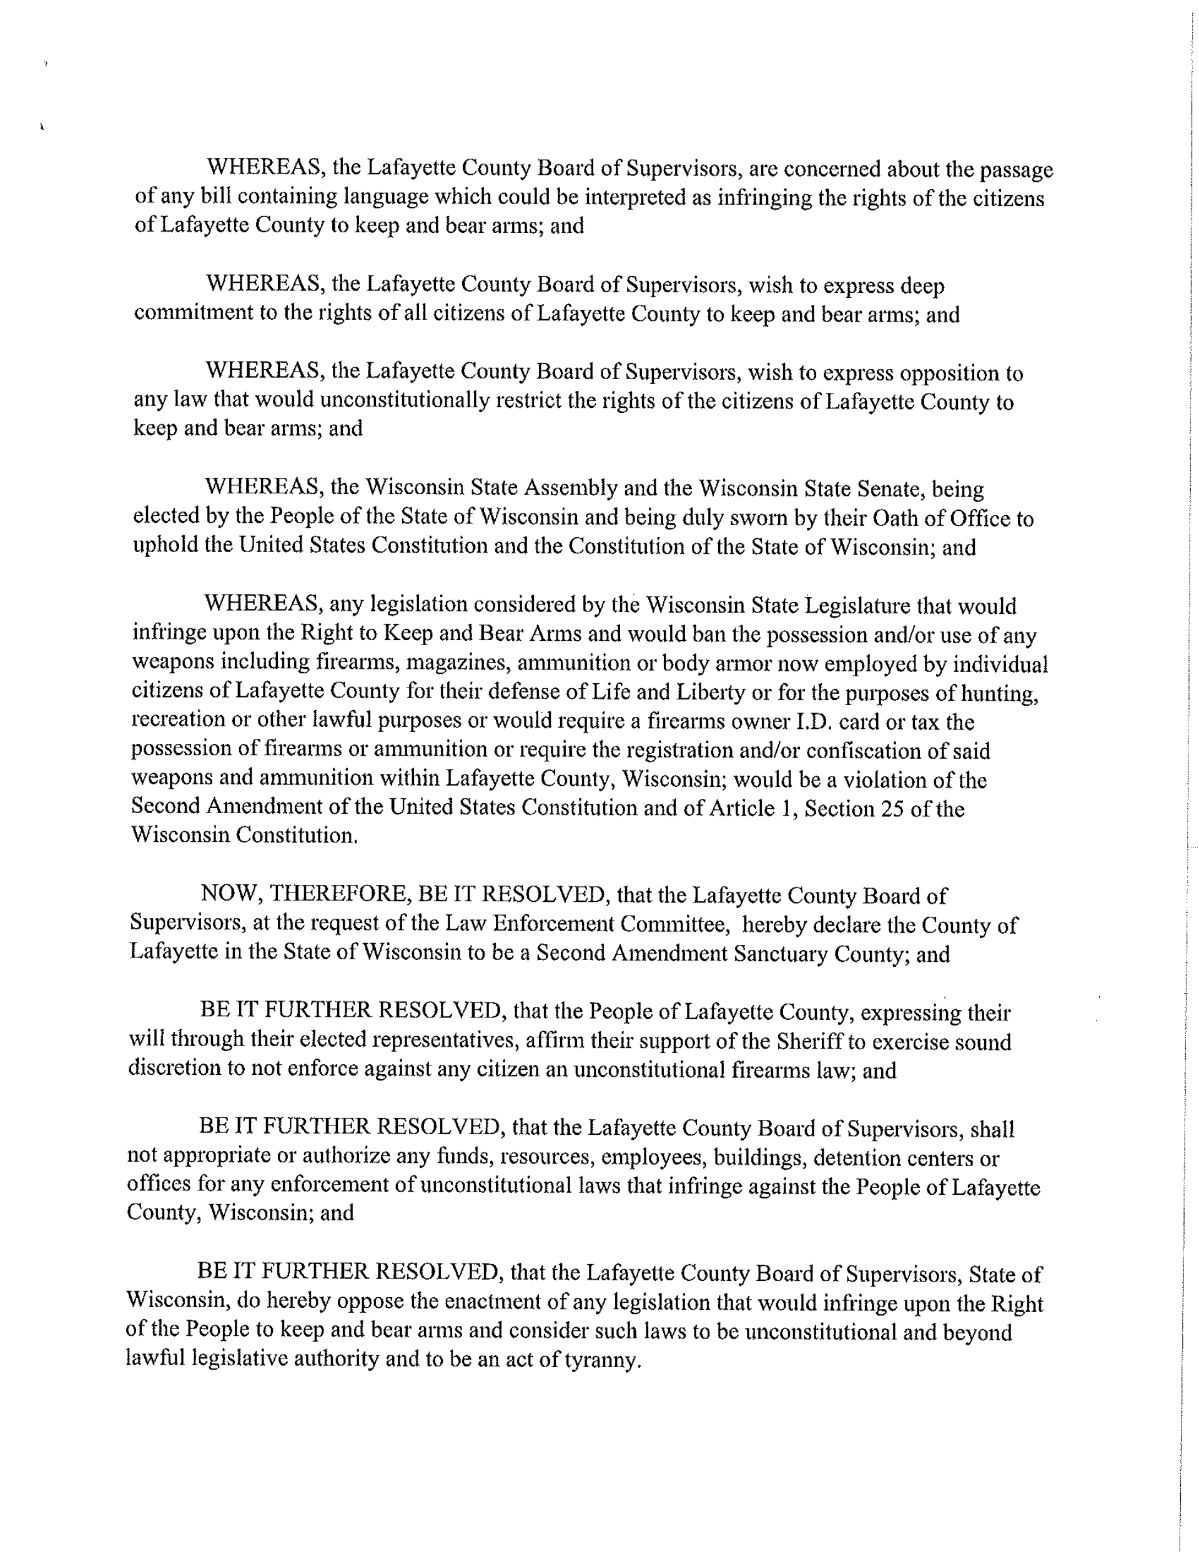 Lafayette County Second Amendment Sanctuary Resolution PG - 2